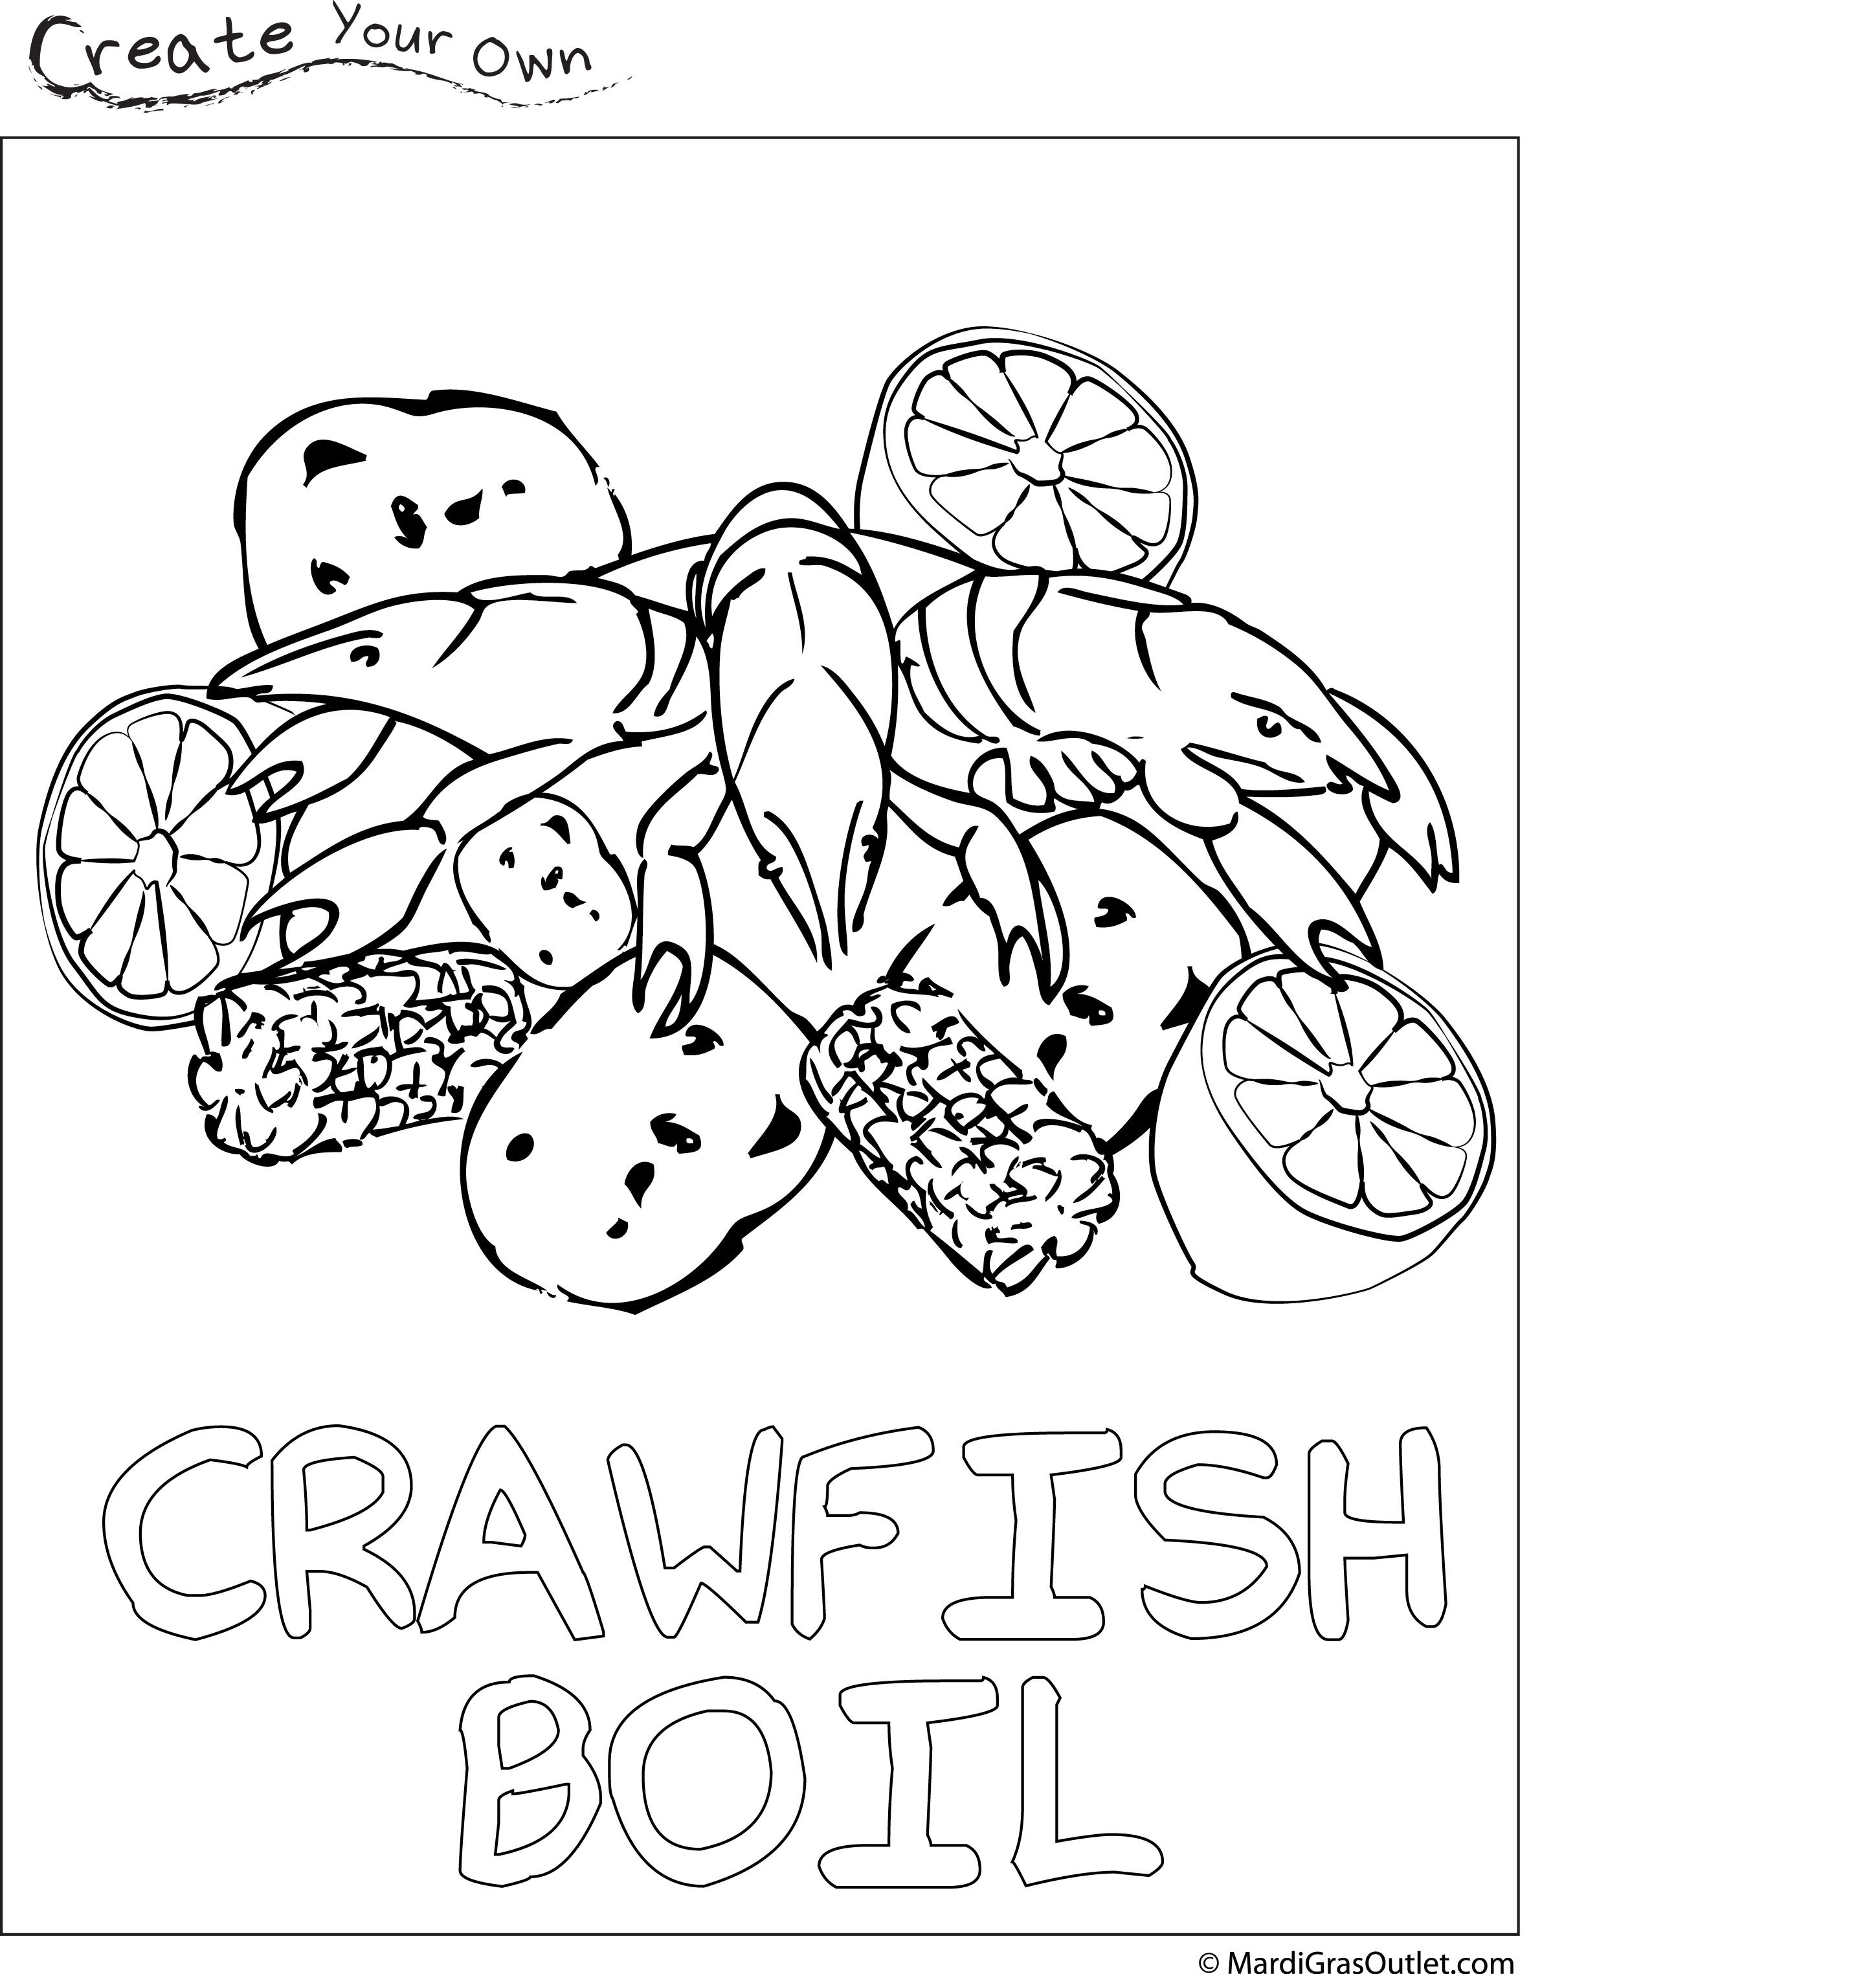 Uncategorized Crawfish Coloring Page crawfish boil coloring page free download gives the kids something to do when they get